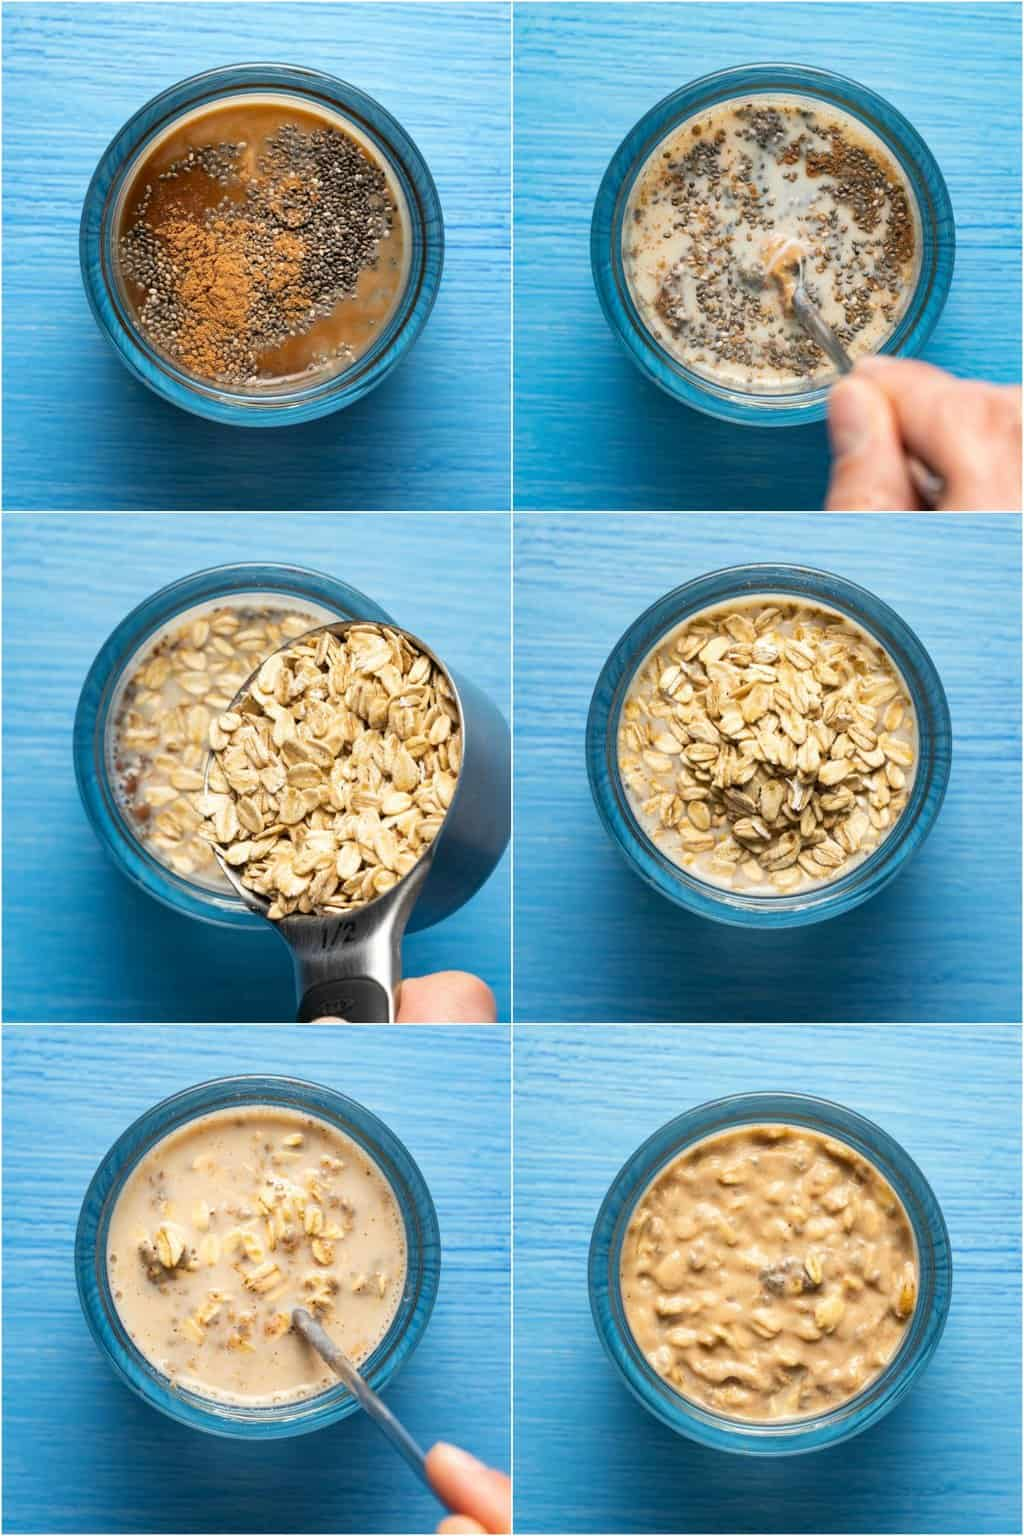 Step by step process photo collage of making overnight oats.